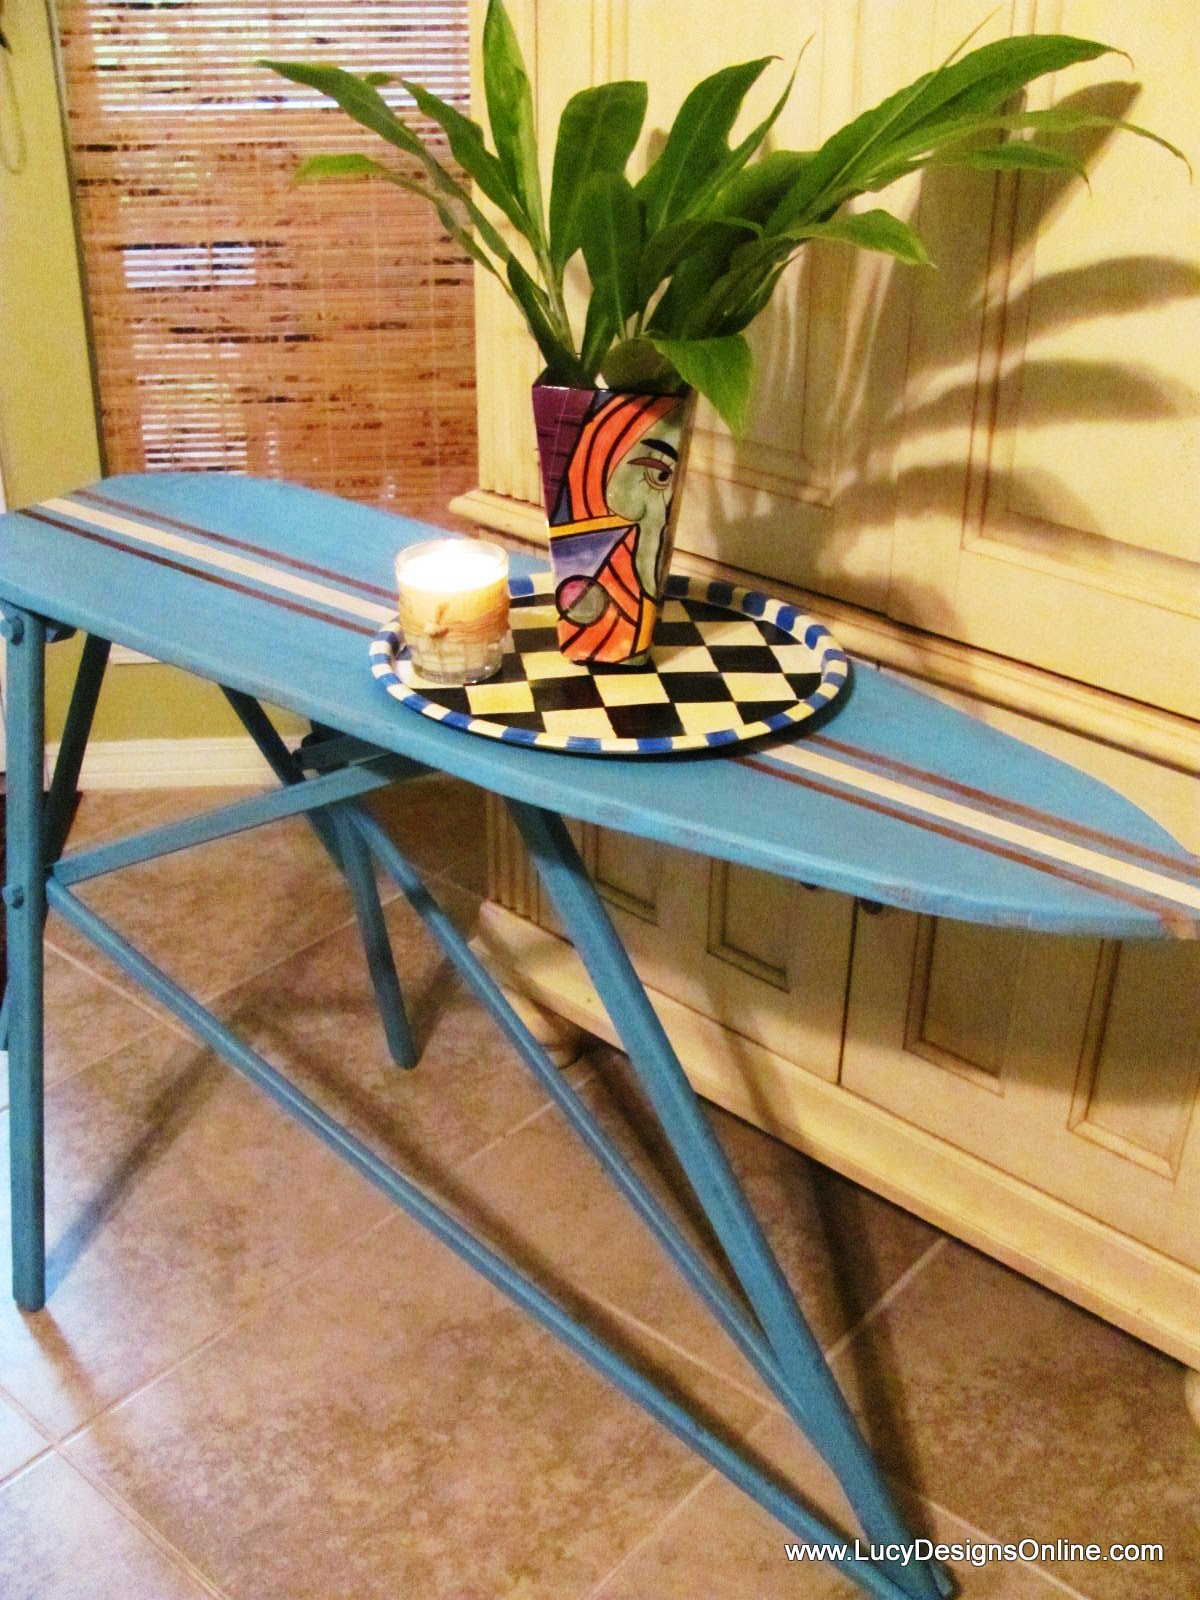 Ironing Board To Surf Board Table Lucy Designs